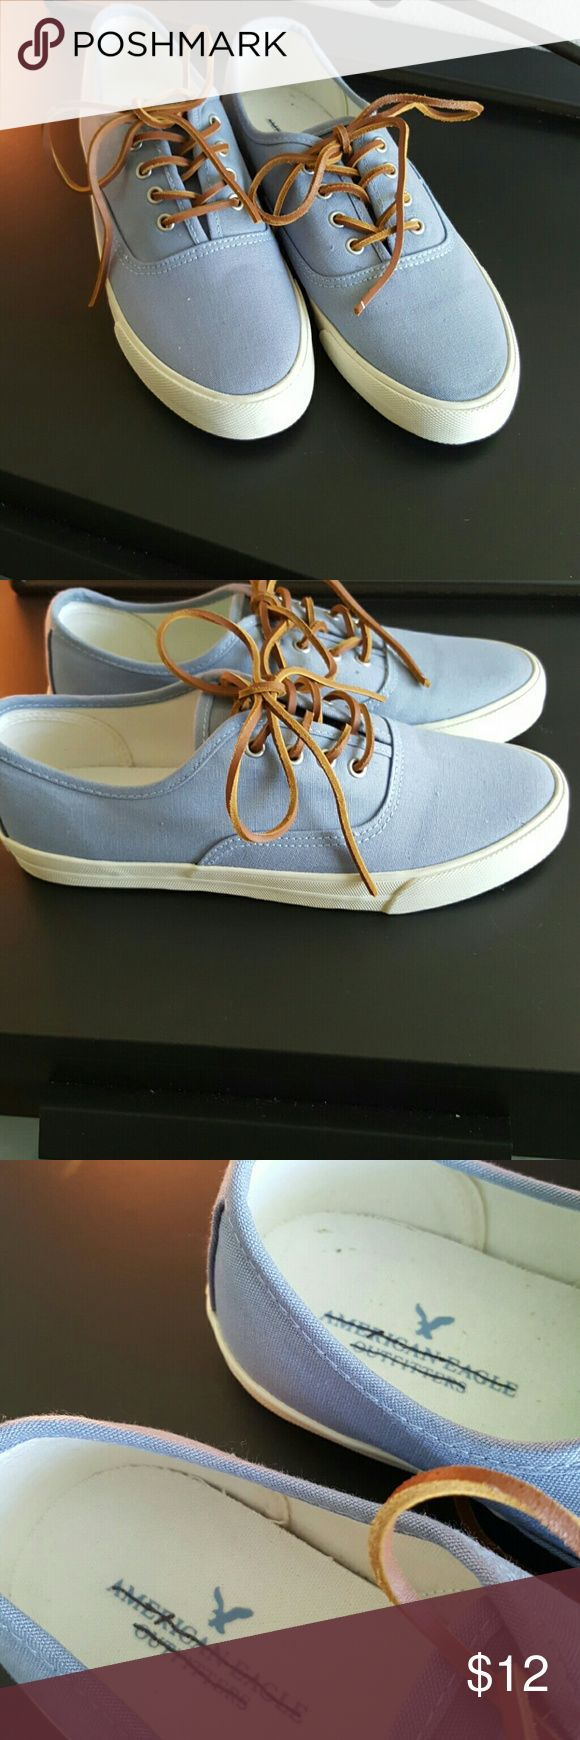 American Eagle Outfitters womens fashion sneakers Light blue fashion sneakers with faux leather laces. Name is scratched through since I bought from an outlet store. American Eagle Outfitters Shoes